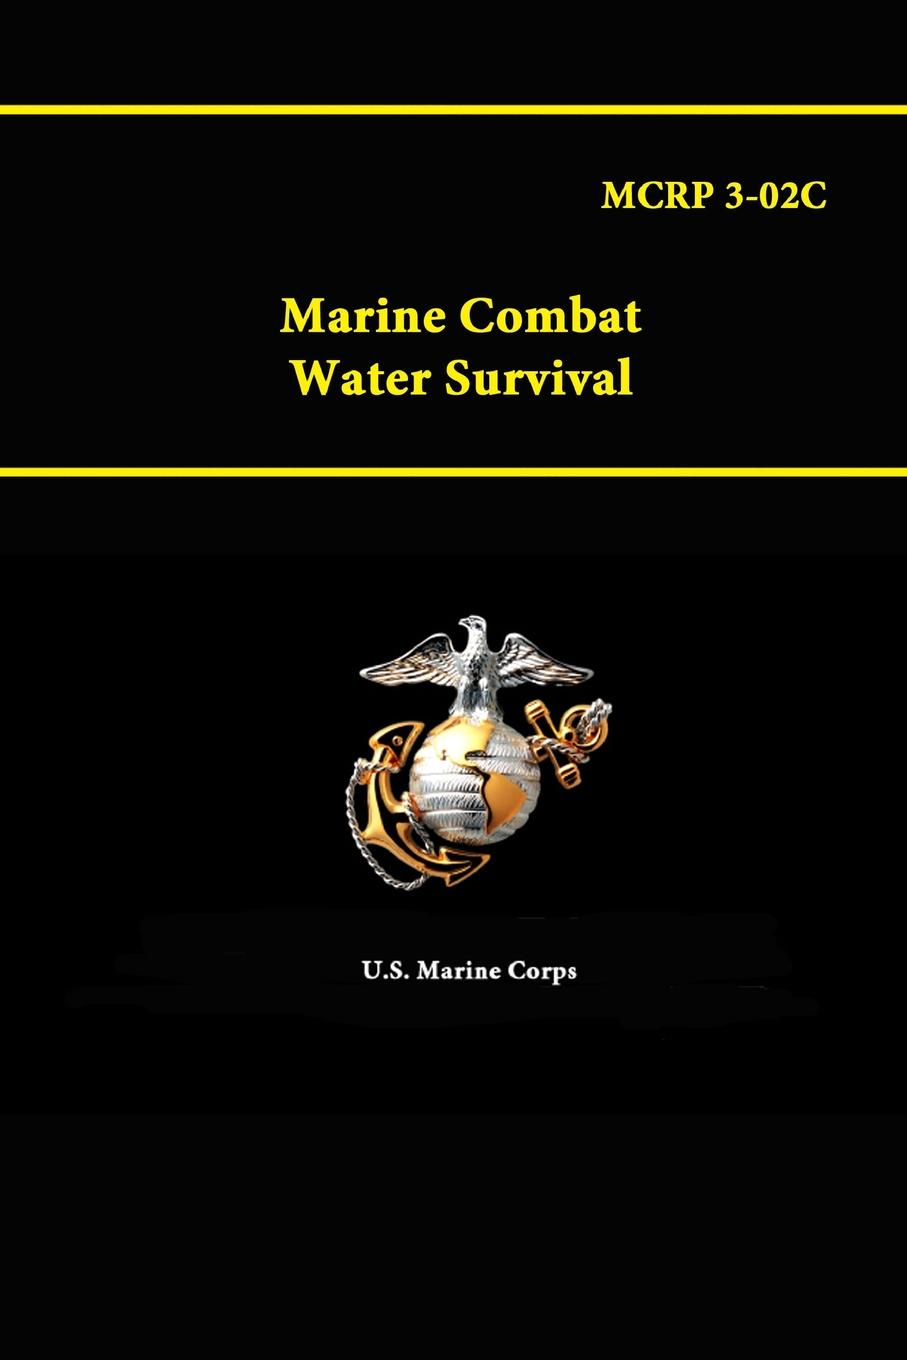 U.S. Marine Corps MCRP 3-02C - Marine Combat Water Survival commercial used water park inflatable triangle water slide for kids